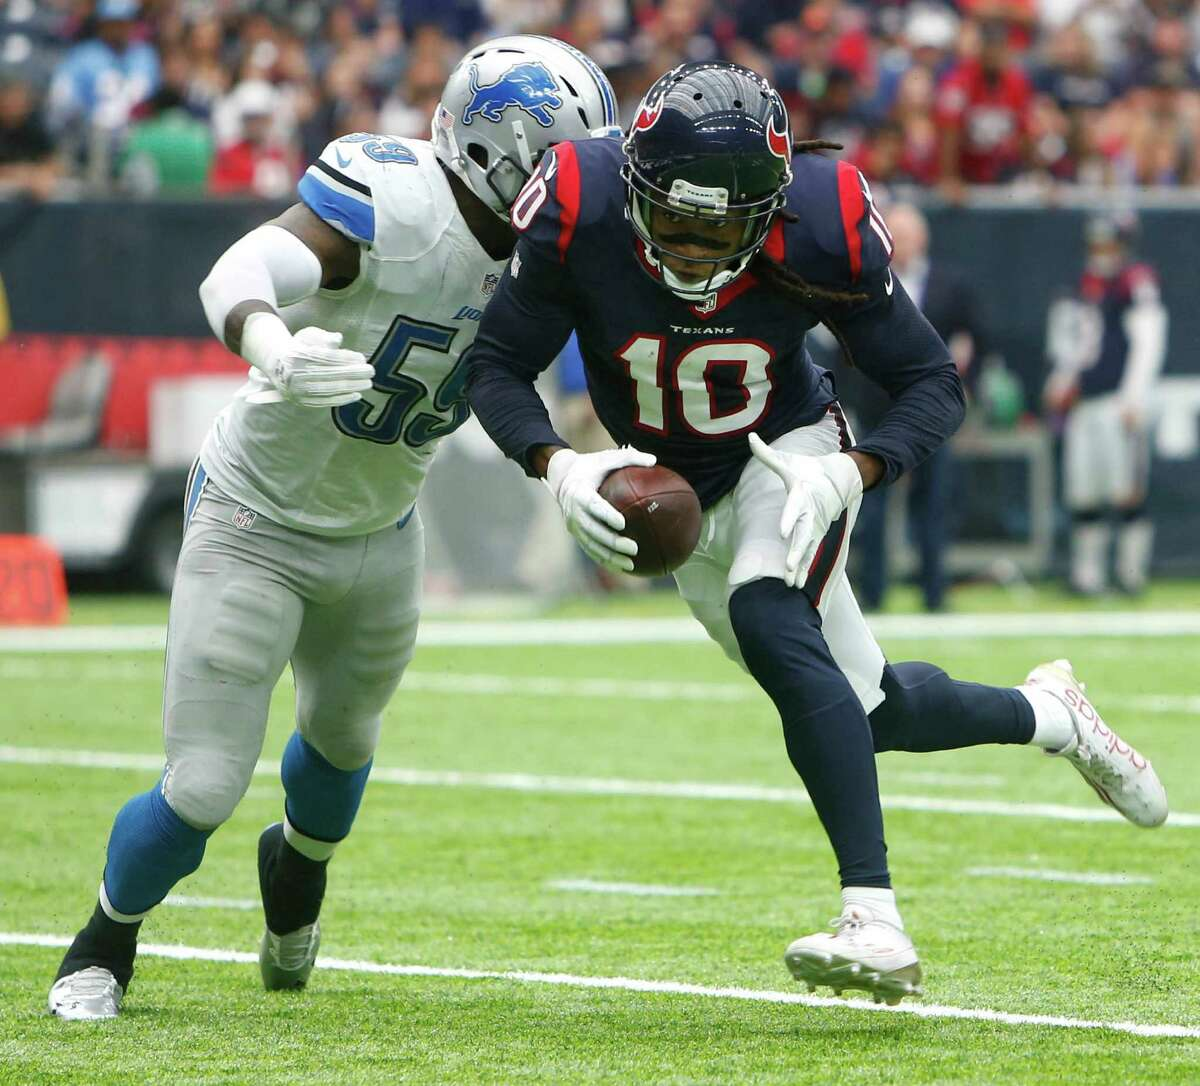 Houston Texans wide receiver DeAndre Hopkins (10) is hit by Detroit Lions middle linebacker Tahir Whitehead (59) on a reception near the goal line during the second quarter of an NFL football game at NRG Stadium on Sunday, Oct. 30, 2016, in Houston. ( Brett Coomer / Houston Chronicle )